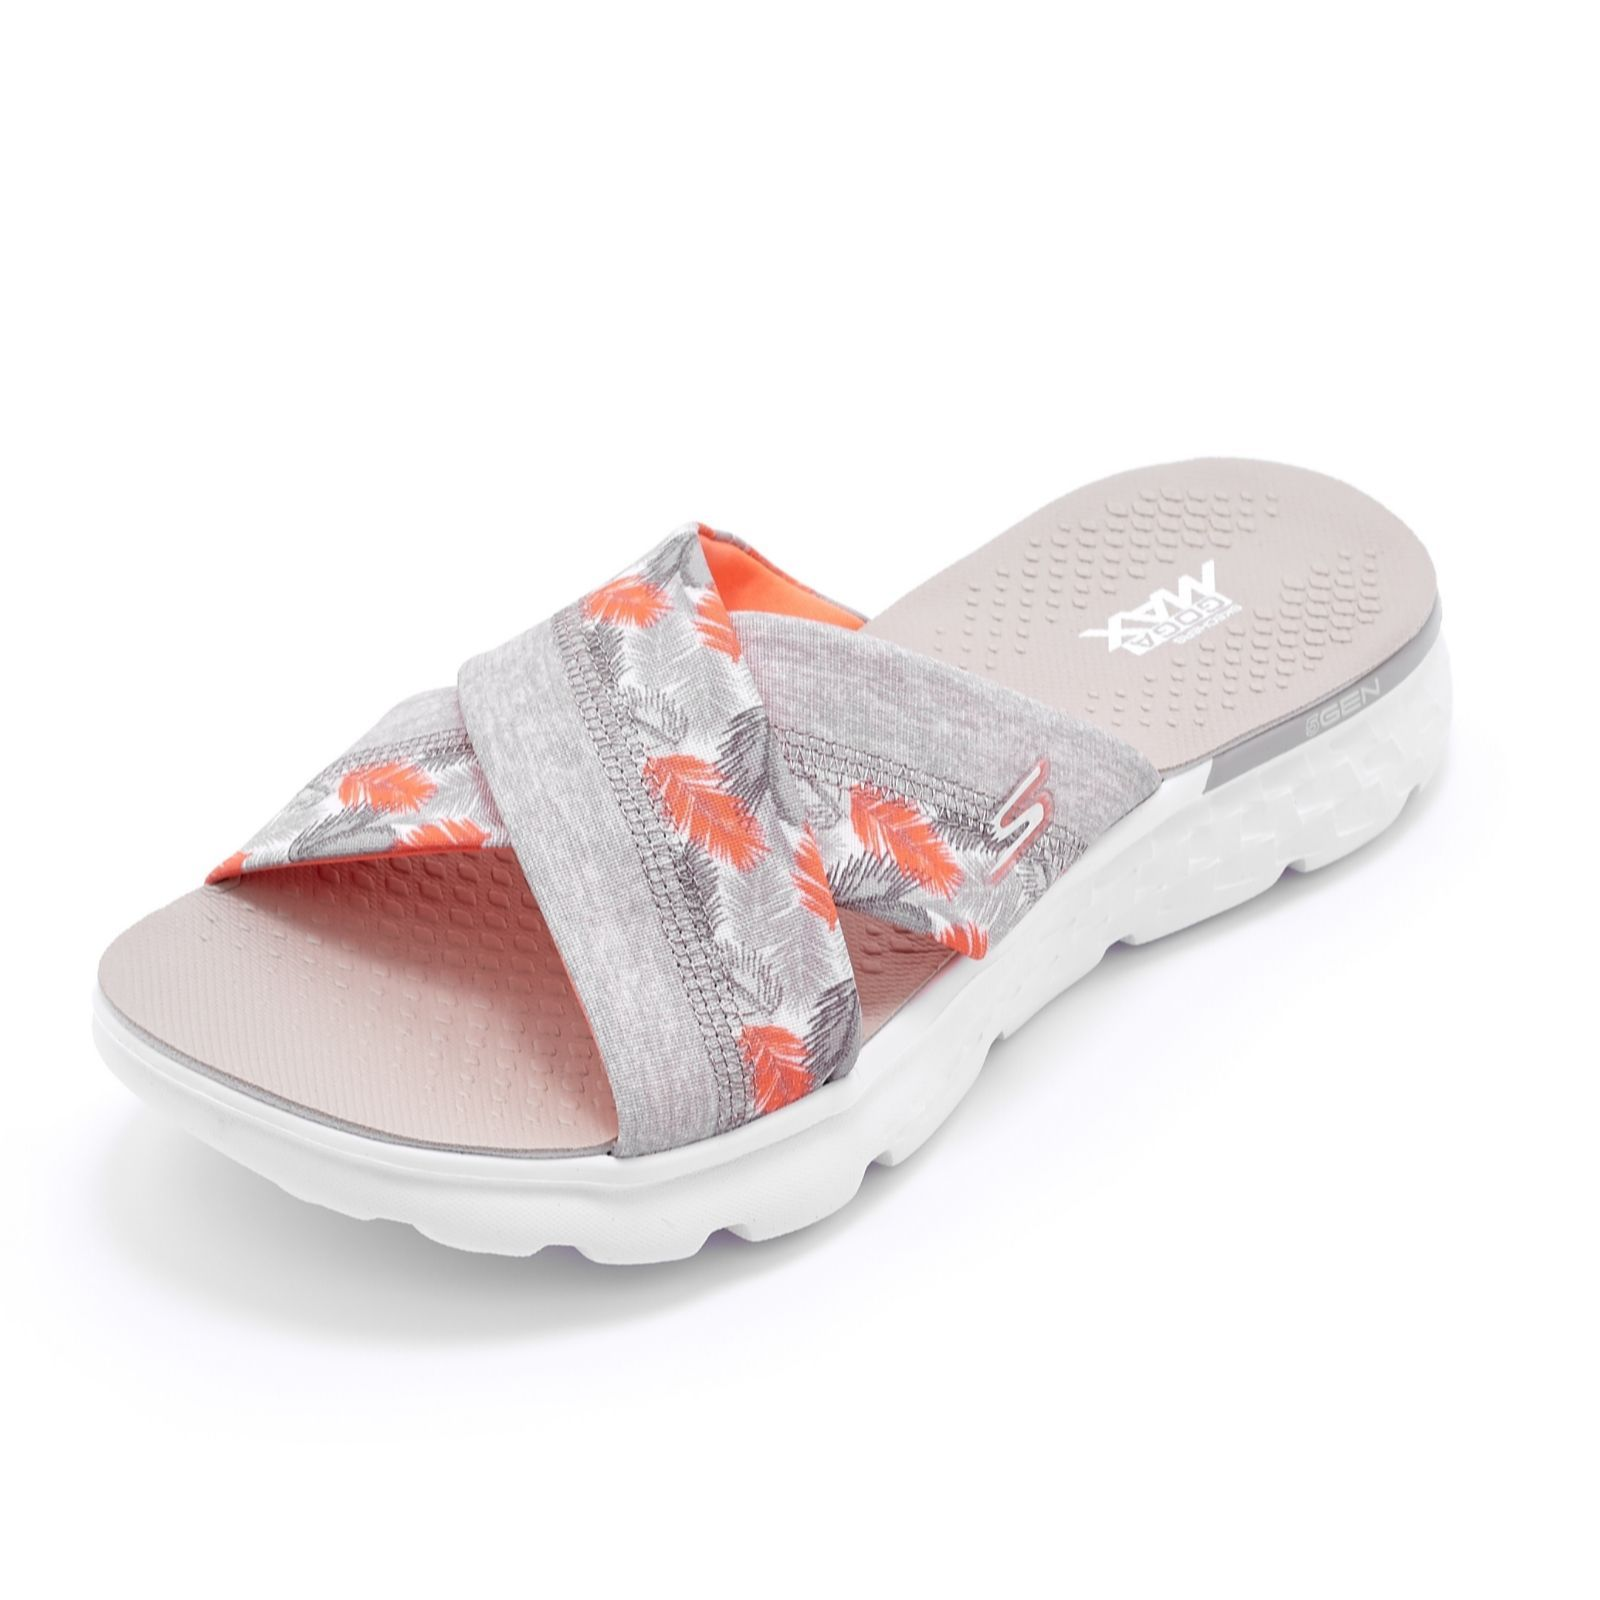 8f25a1576c9a These comfy and stylish Skechers sandals feature cross-over straps and a  tropical print.